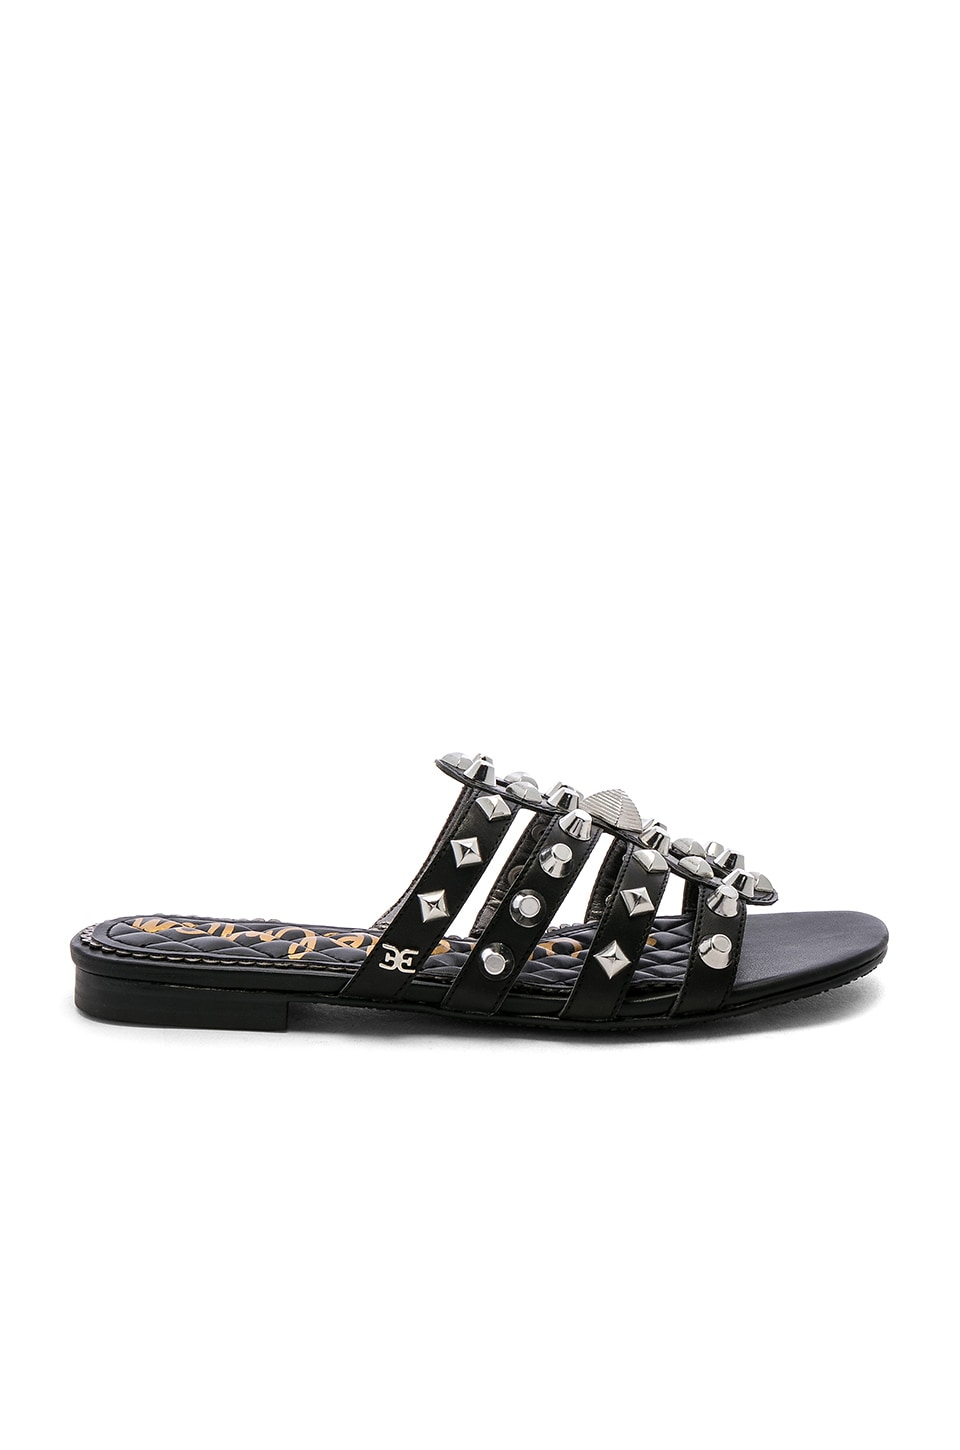 Sam Edelman Beatris Sandal in Black